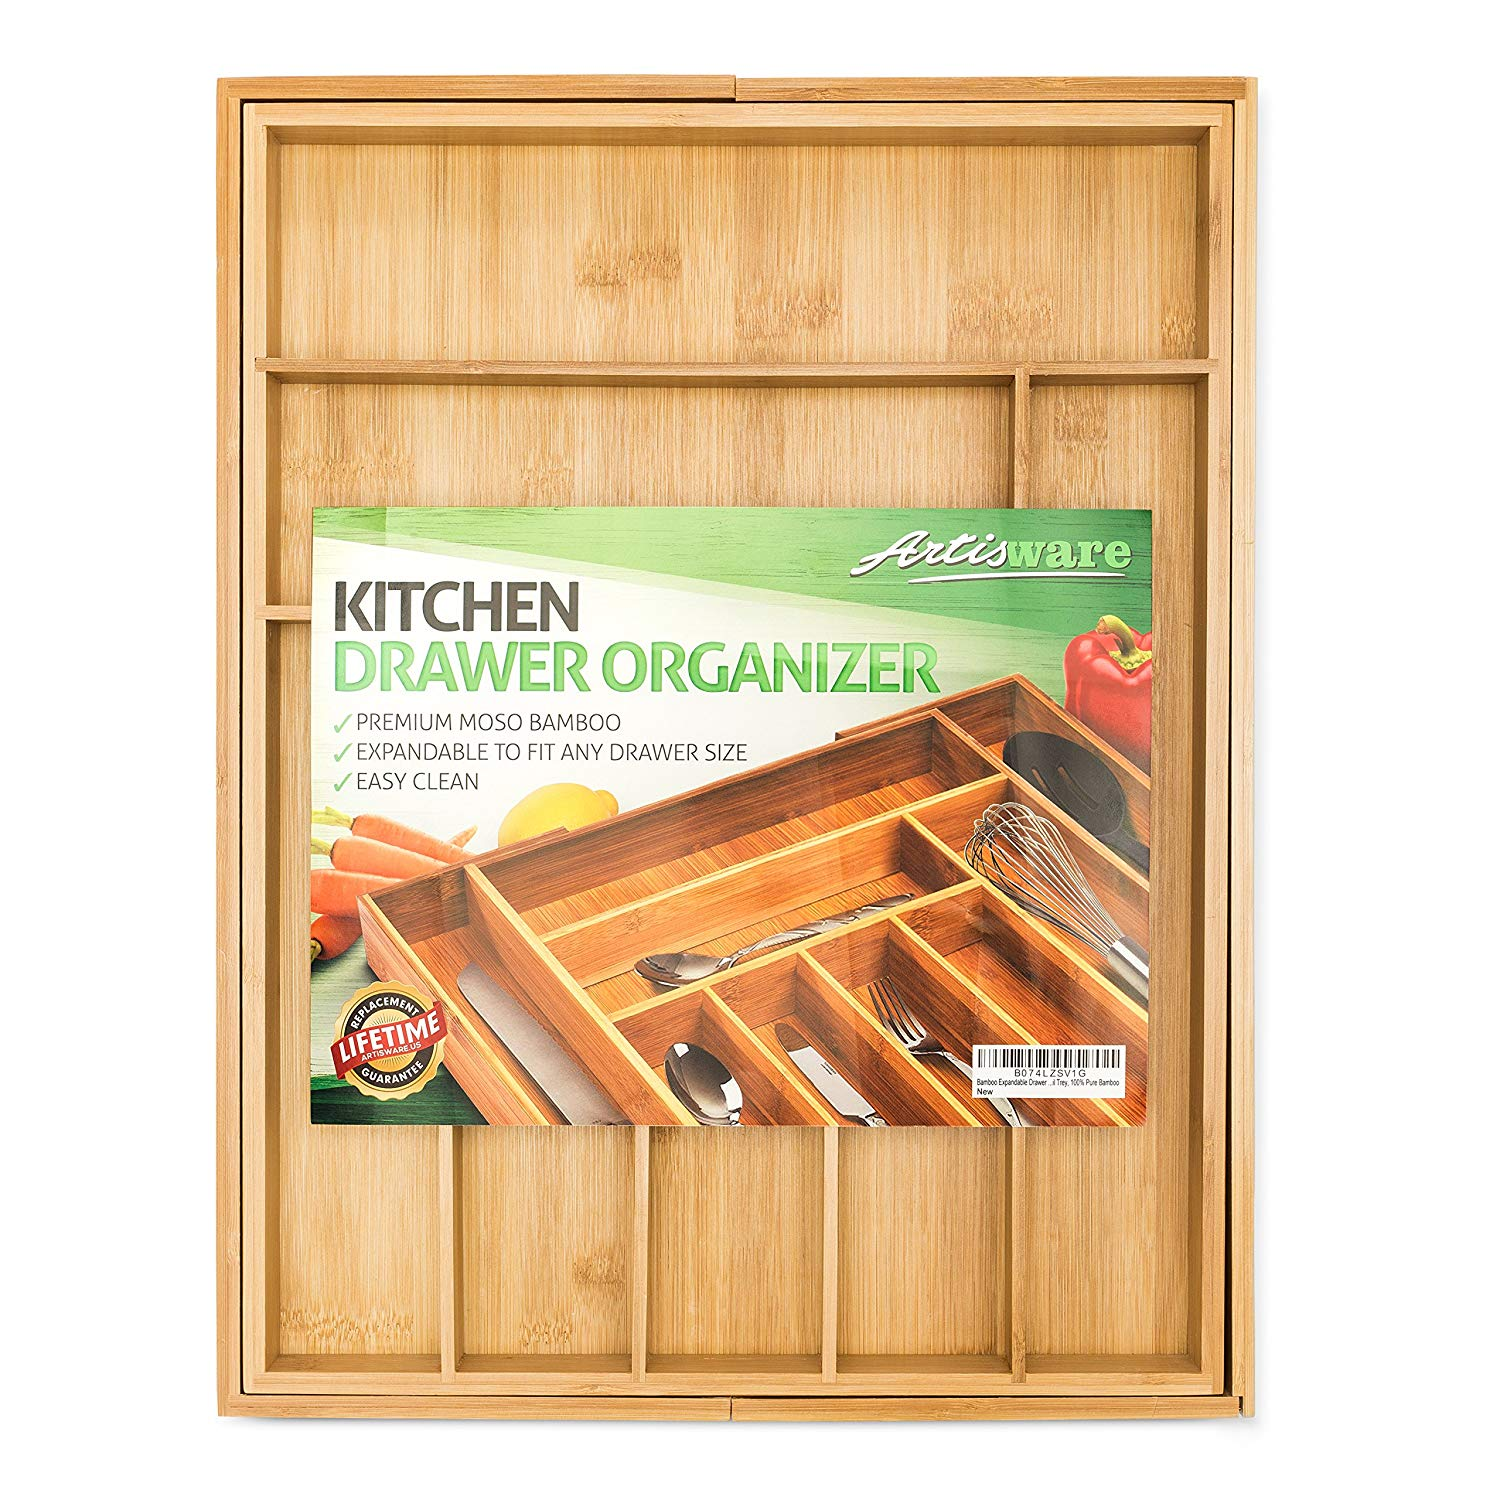 11 Things to Help You Maximize Your Kitchen Cabinet Storage Expandable Drawer Organizer Tray #Organize #Organization #OrganizedKitchen #Kitchen #KitchenCabinets #KitchenStorage #CabinetStorage #Storage